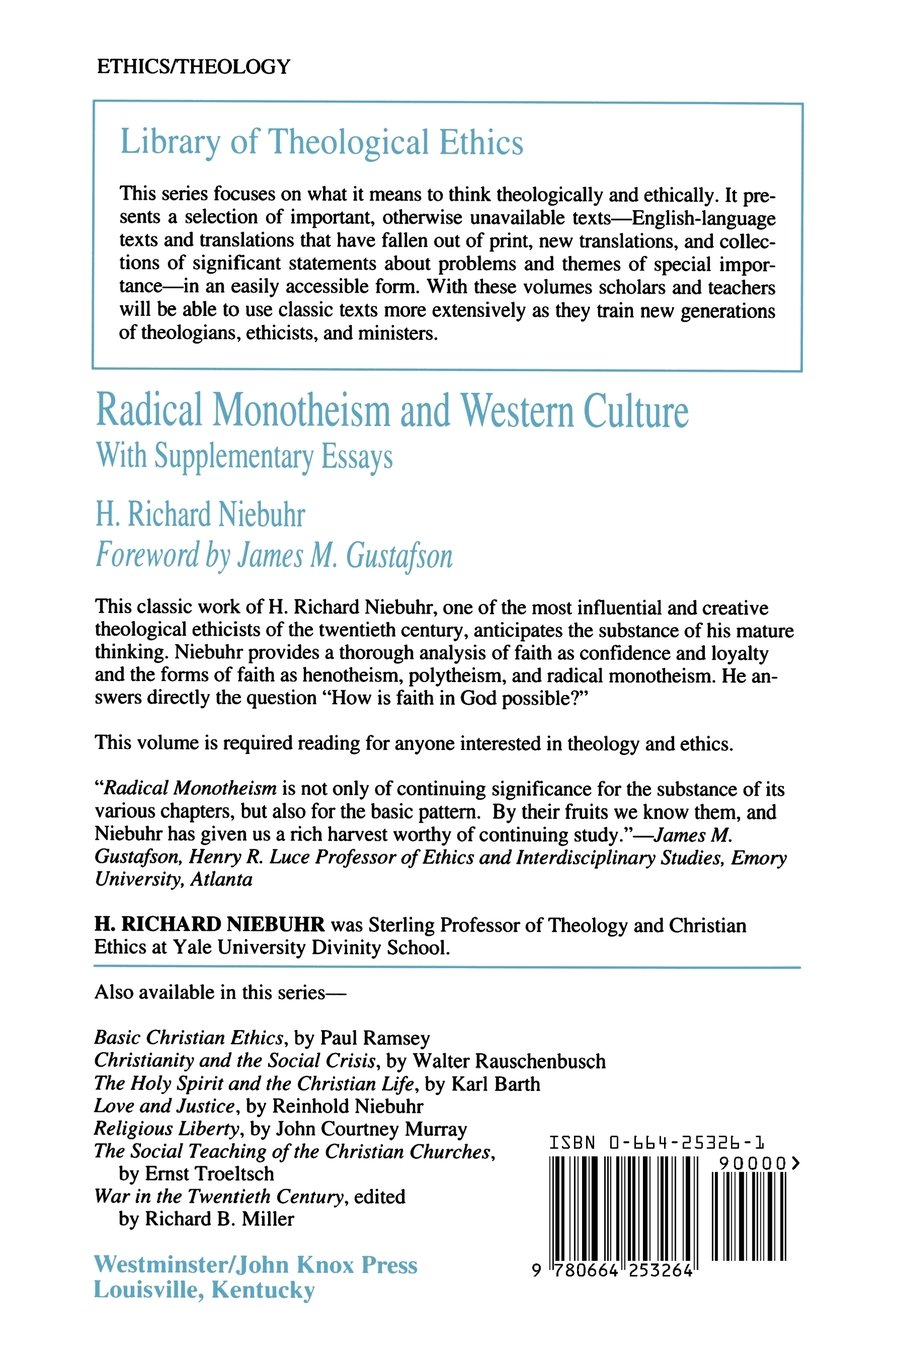 radical monotheism and western culture with supplementary essays